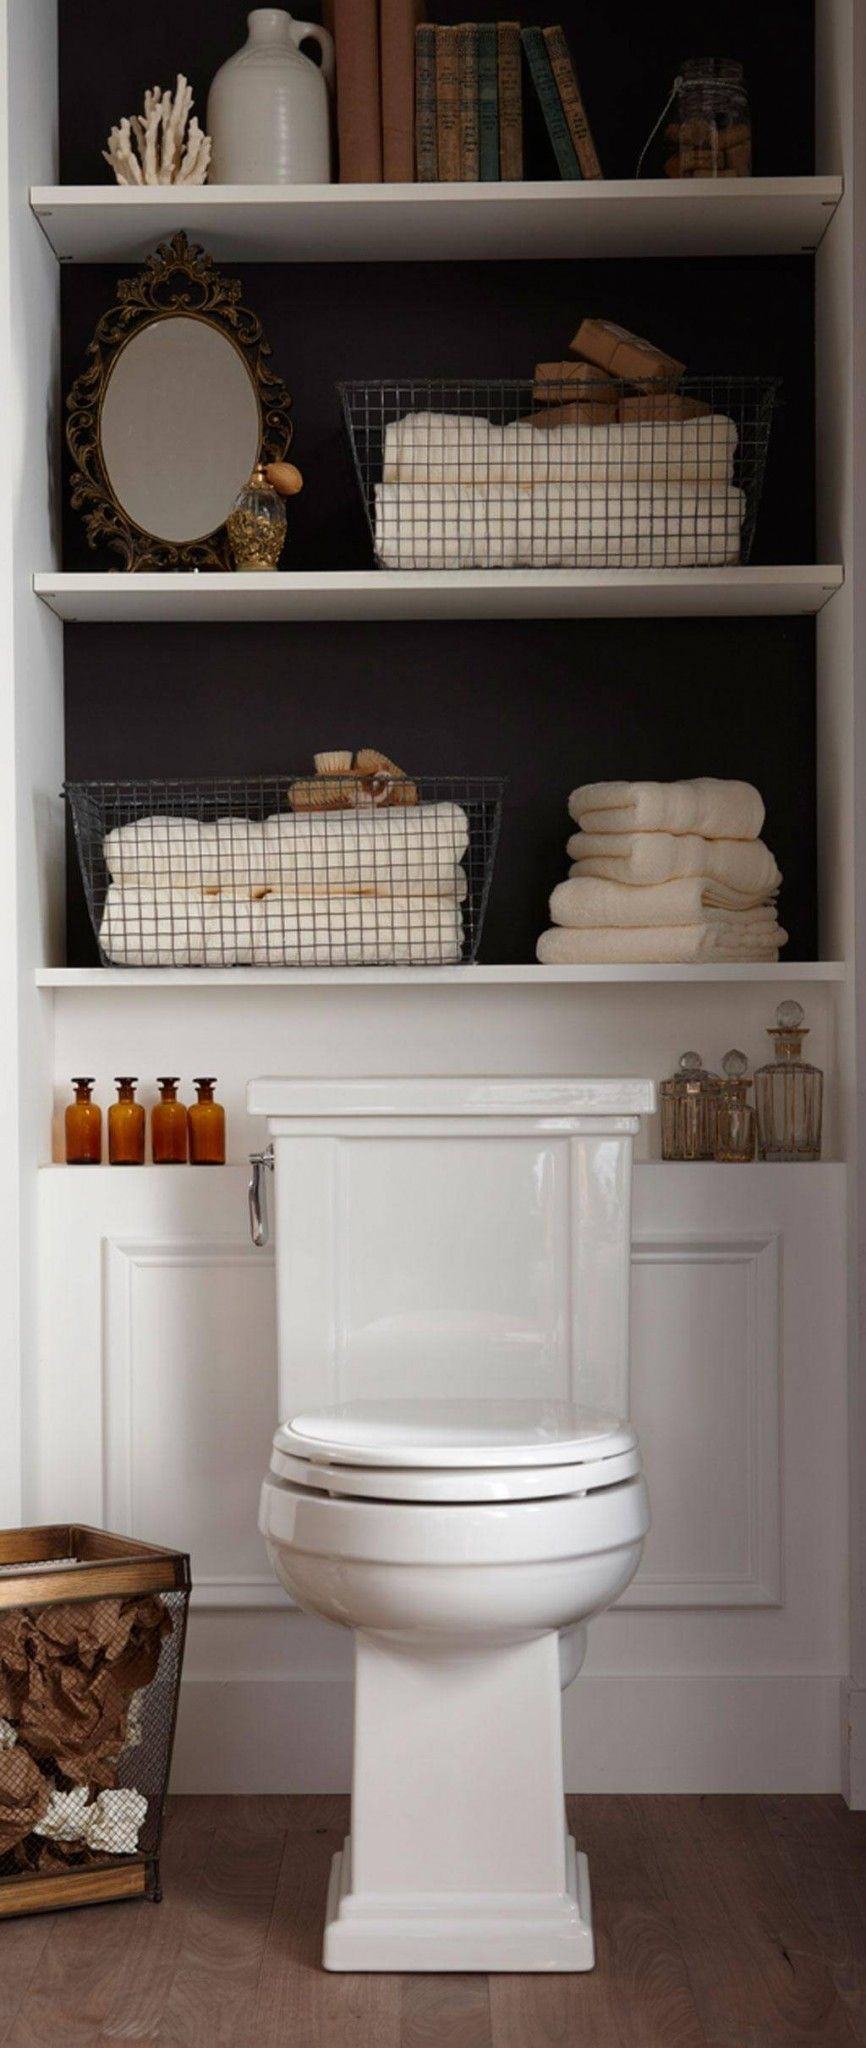 Over the toilet storage shelves with molding accent